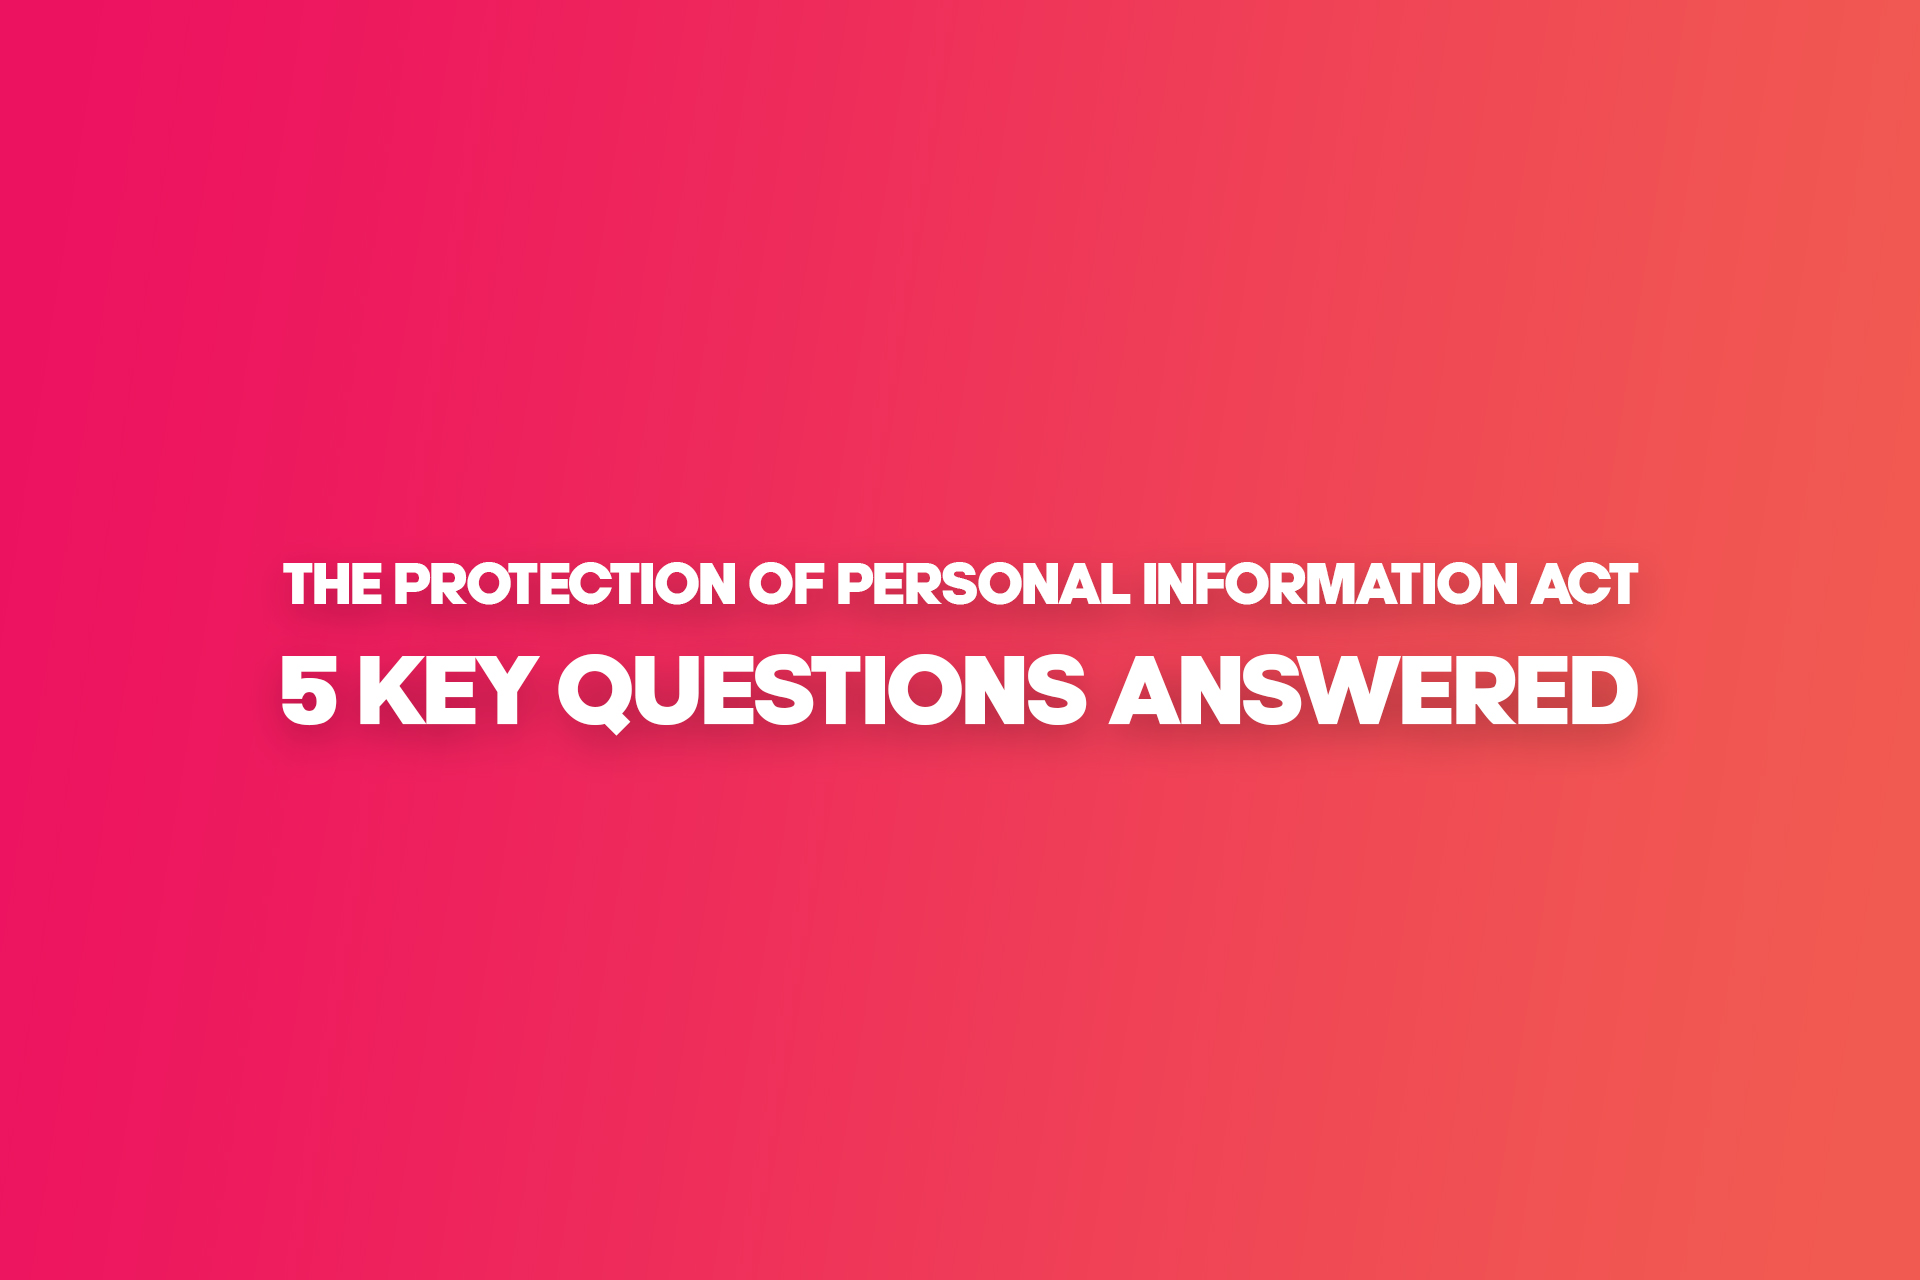 The Protection of Personal Information Act (POPI Act): 5 Key Questions Answered